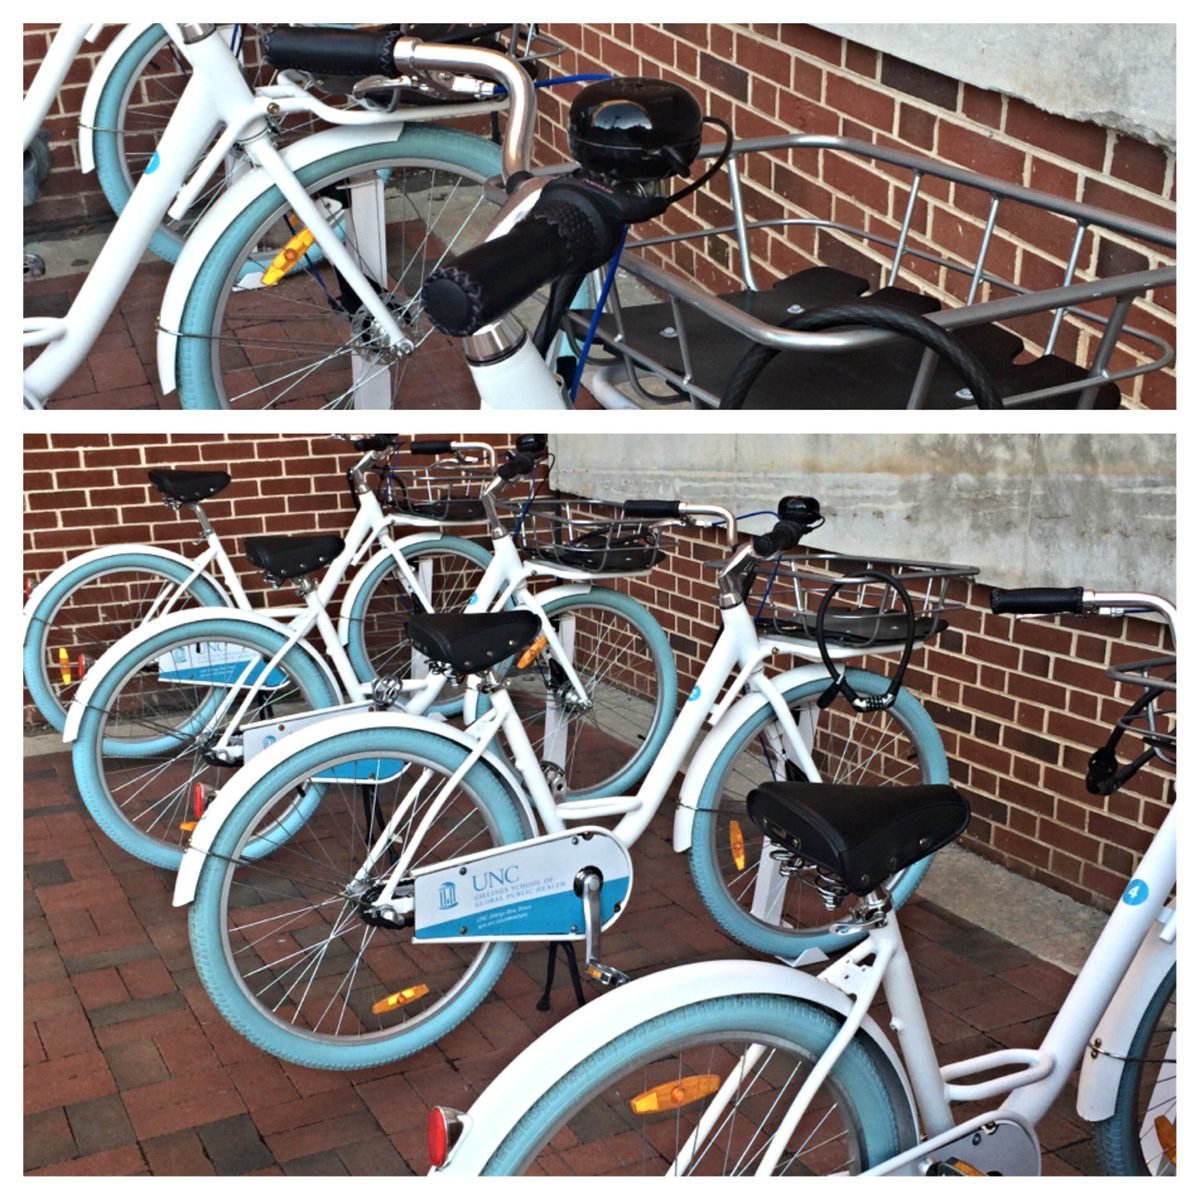 School of Public Health bike share